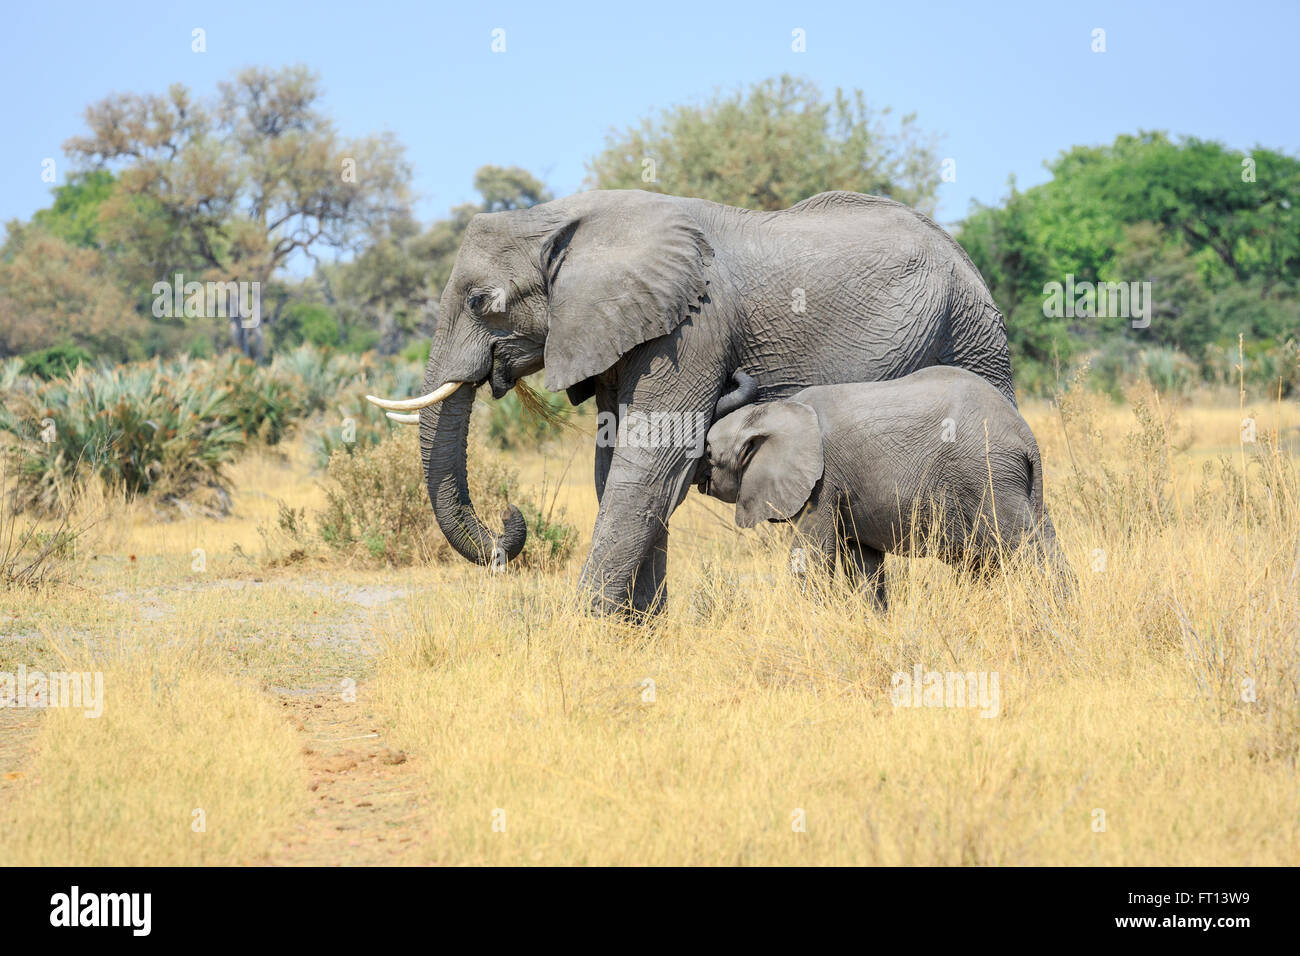 African bush elephants (Loxodonta africana), mother suckling baby, savannah scenery, Sandibe Camp, Moremi Game Reserve, - Stock Image